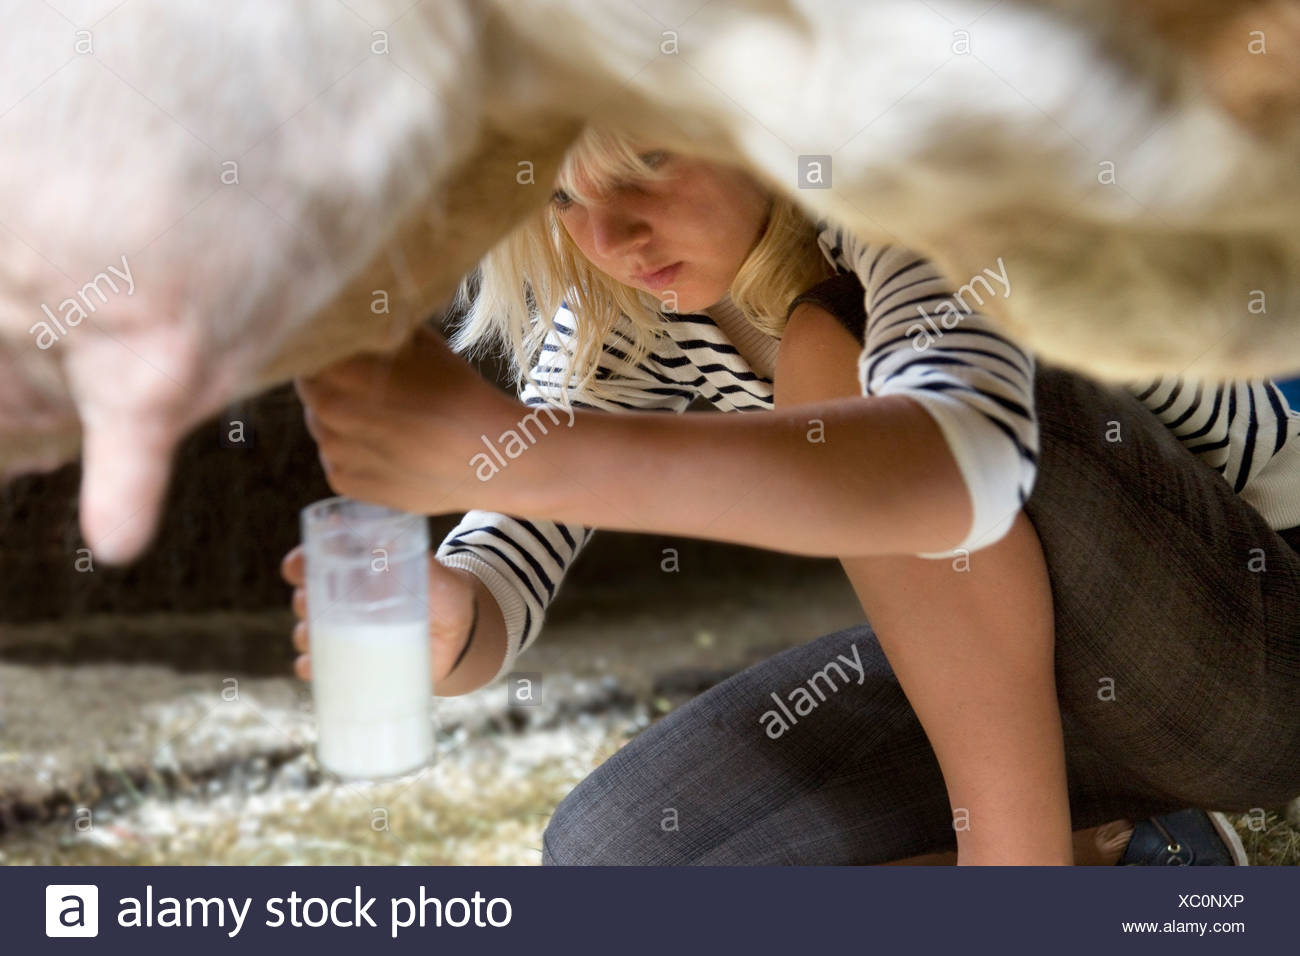 girl milking cow by hand - Stock Image